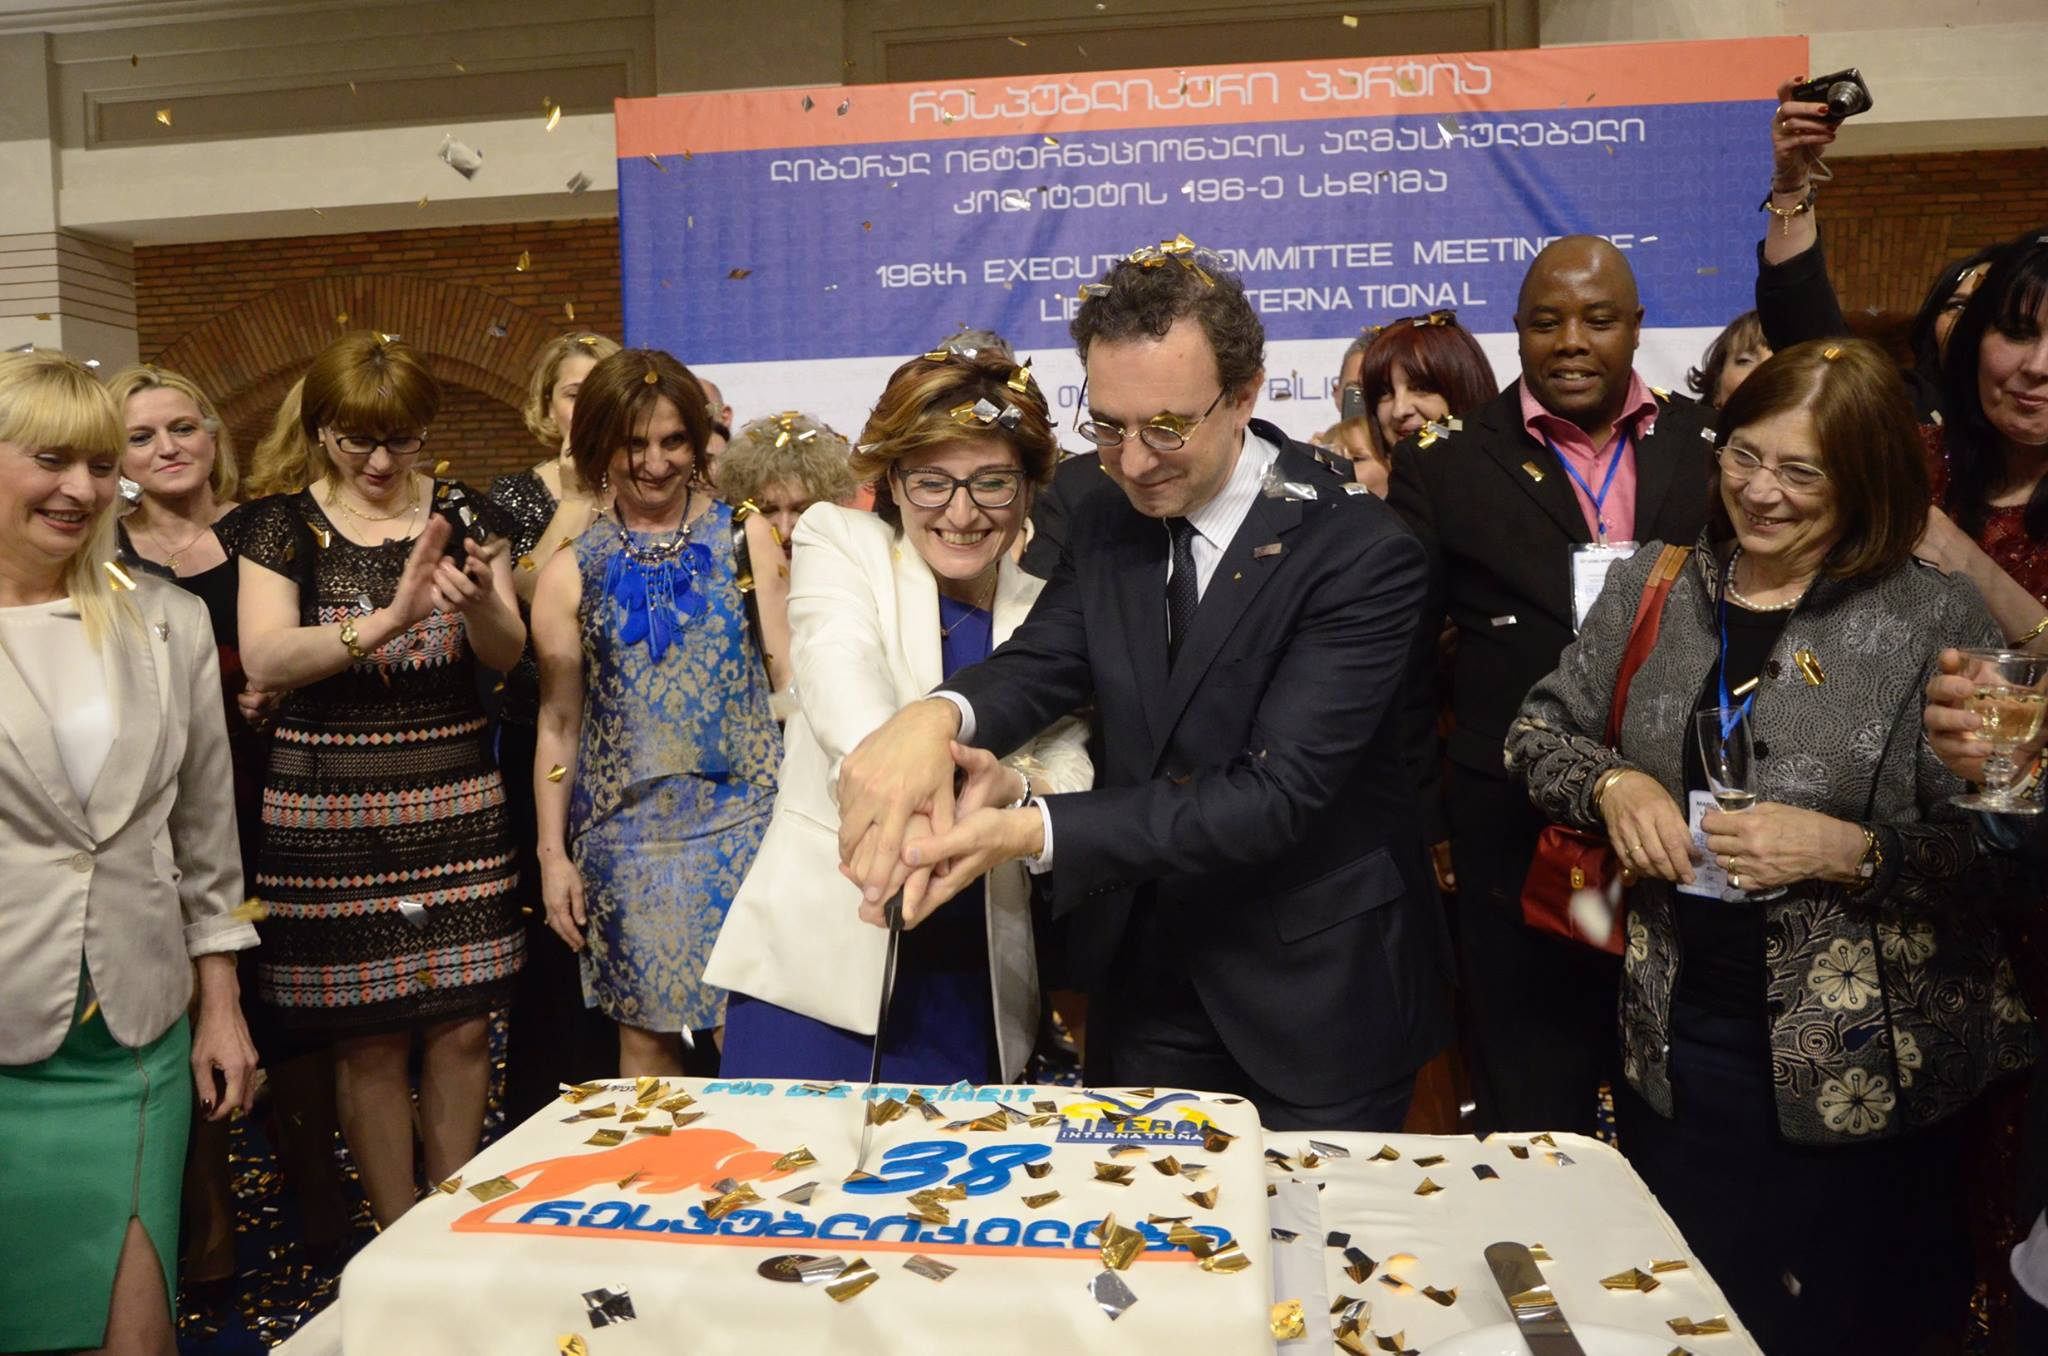 Cutting the cake at the Republican Party's 38th birthday.